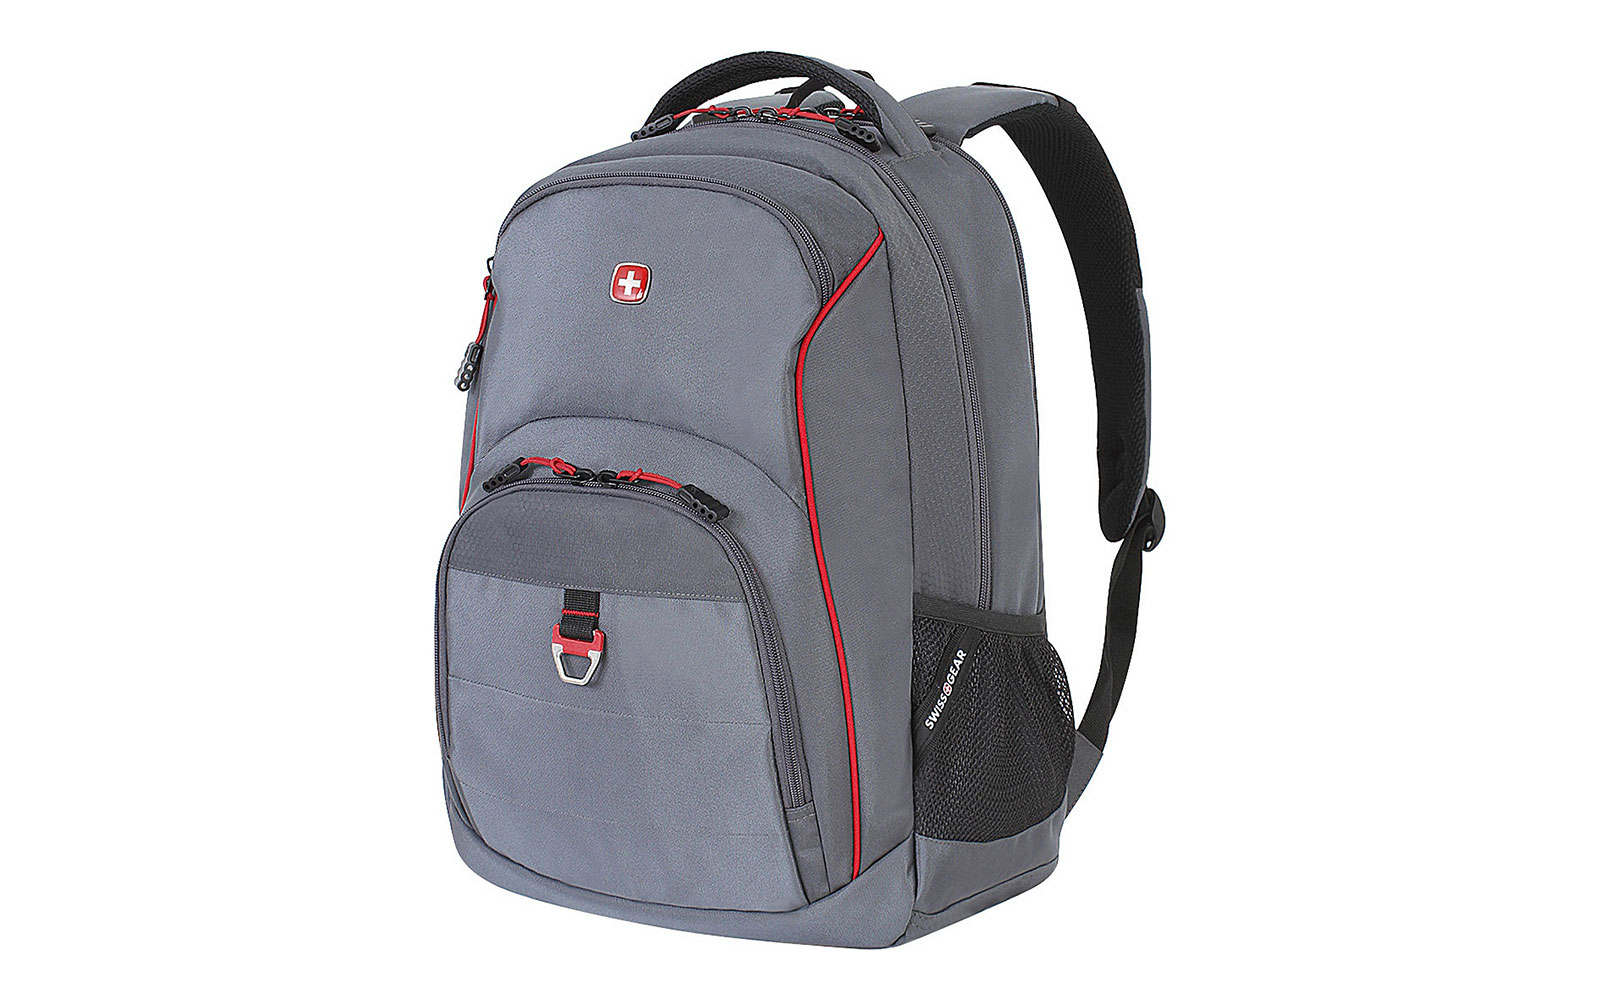 SwissGear Travel Gear 5865 Laptop Backpack